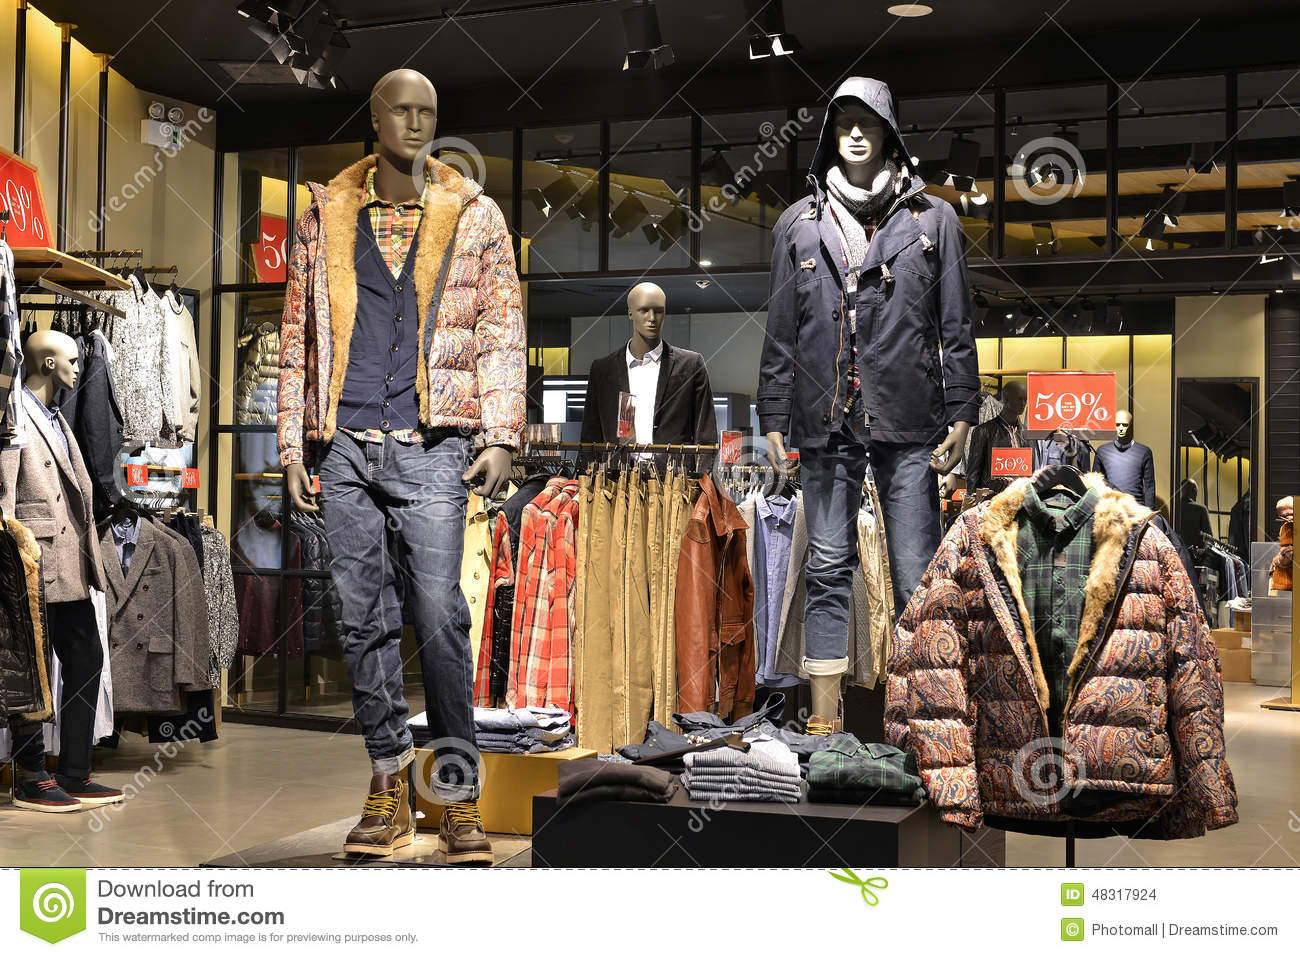 JCPenney is one of the premier men's clothing stores in the nation. Dive into our diverse and massive collection of top of the line men's clothes by all of the brands you know and exclusive JCPenney brands! Our men's online store has everything you need to fill your closet for every occasion.